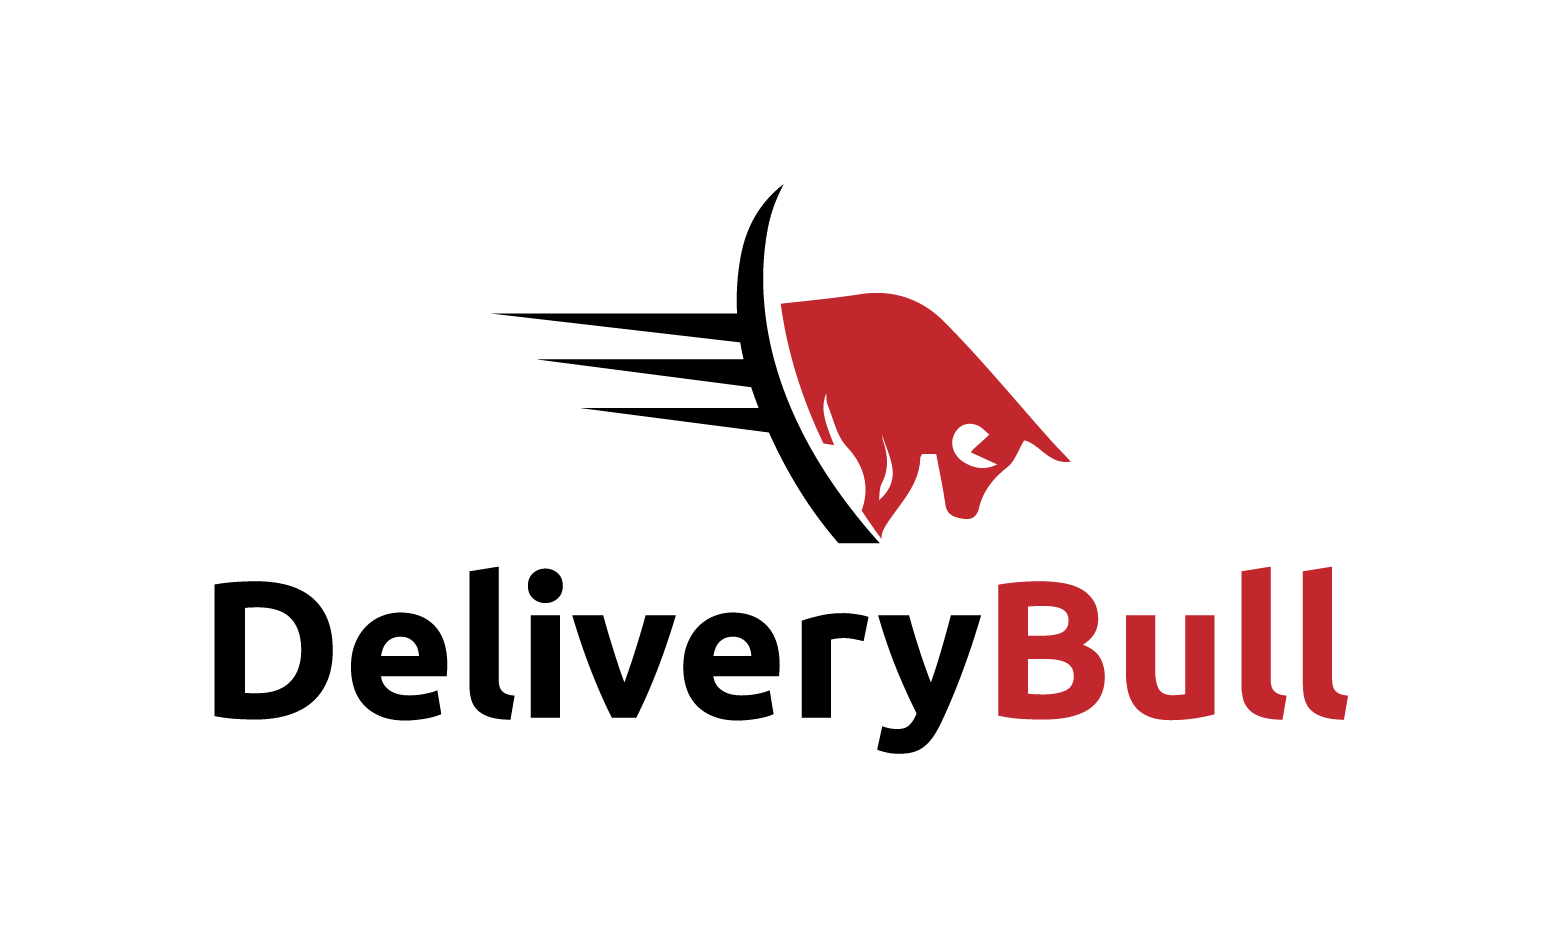 DeliveryBull.com